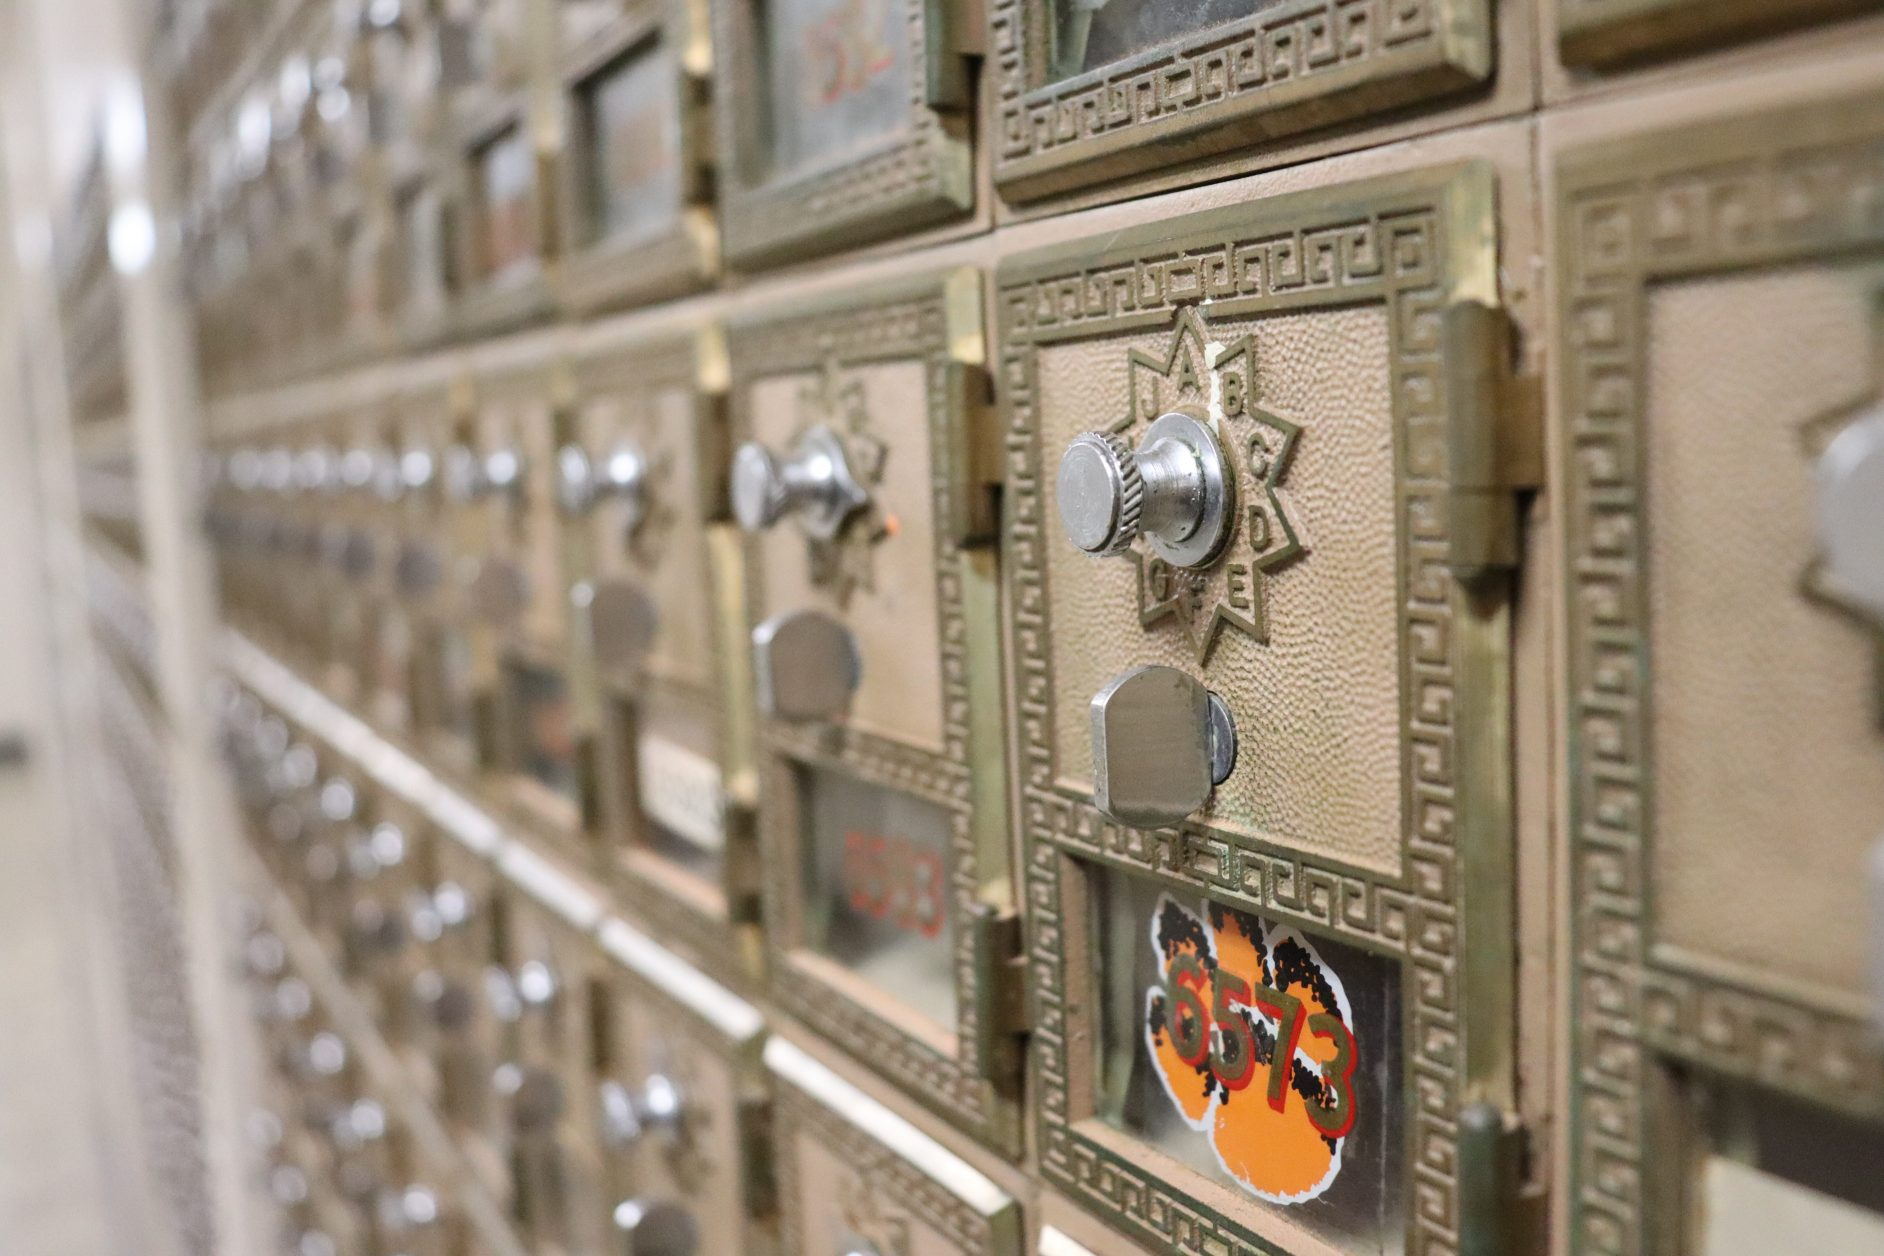 Post Office Boxes